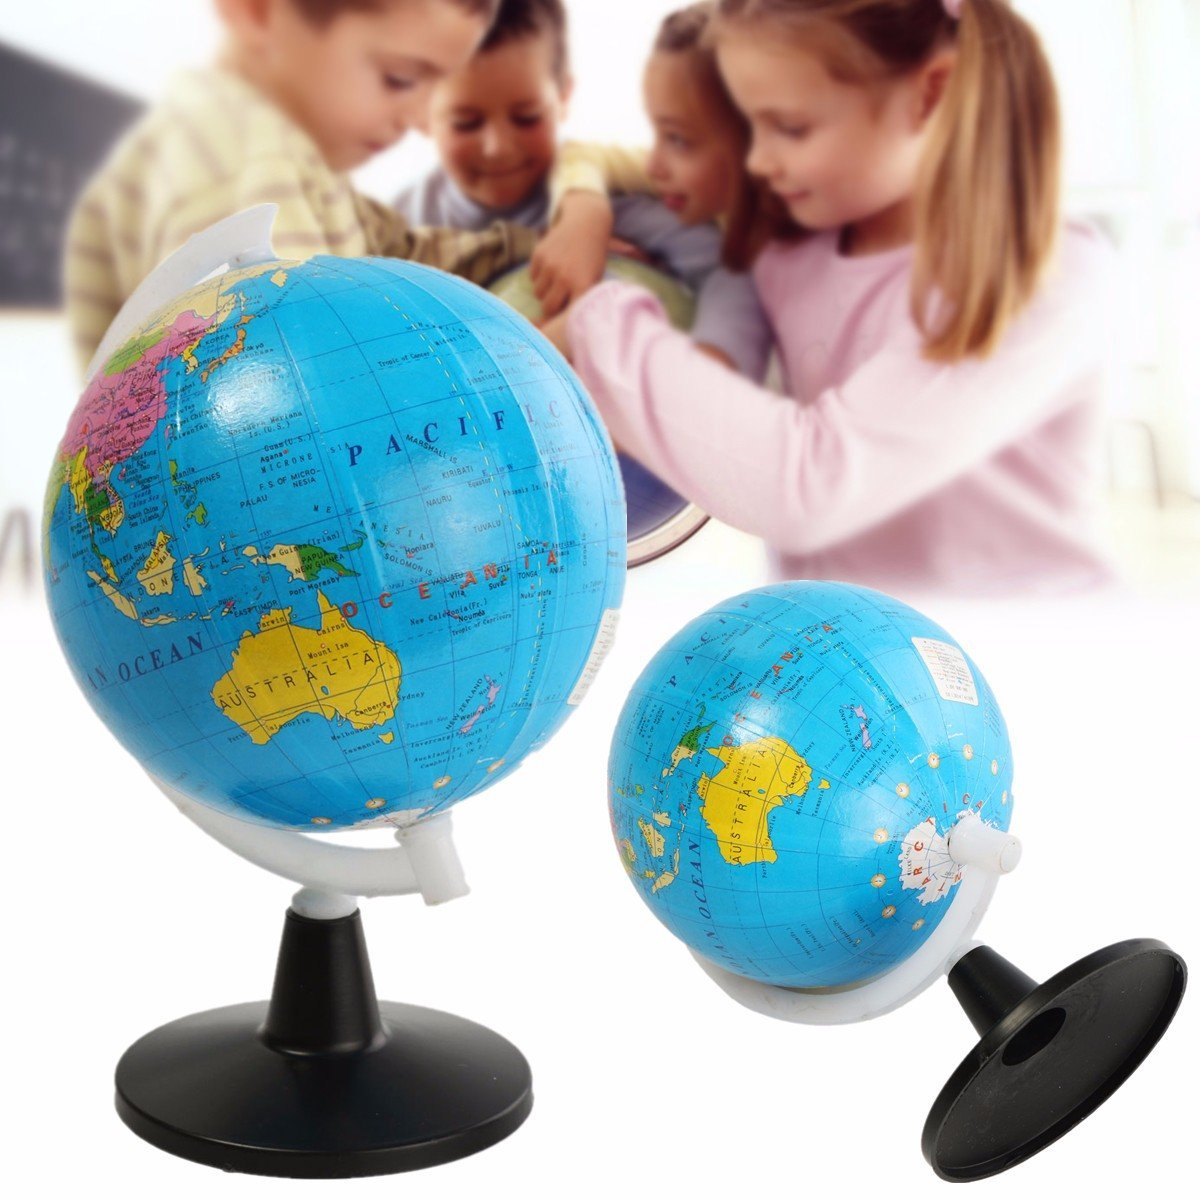 Bazaar 8.5cm World Globe Atlas Map With Swivel Stand Geography Educational Toy Home Decor Gift Big Bazaar